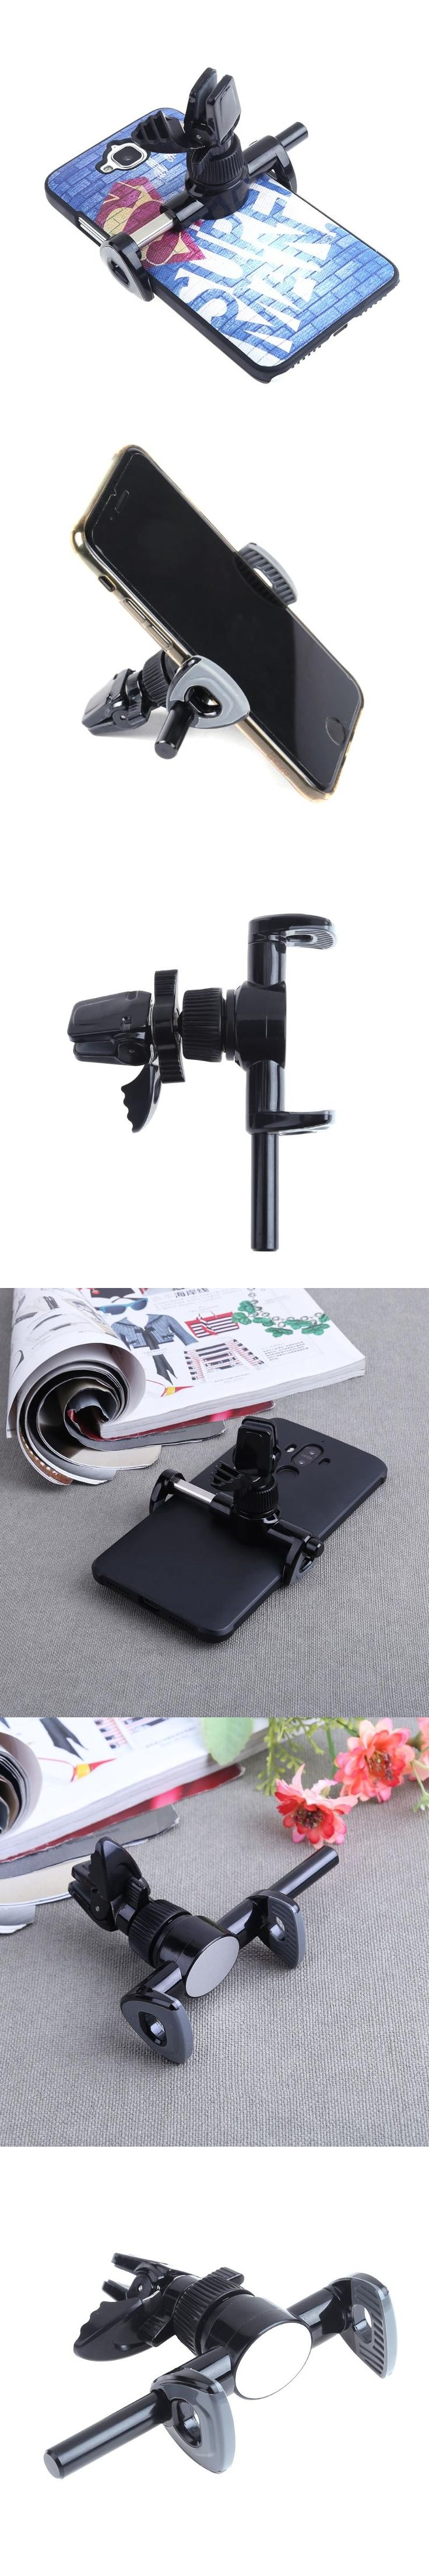 Universal Car Interior AC Vent Mount Smart Phone Holder Bracket Stand Bicycle Motorcycle 360 Degree Rotary Phone GPS Holder